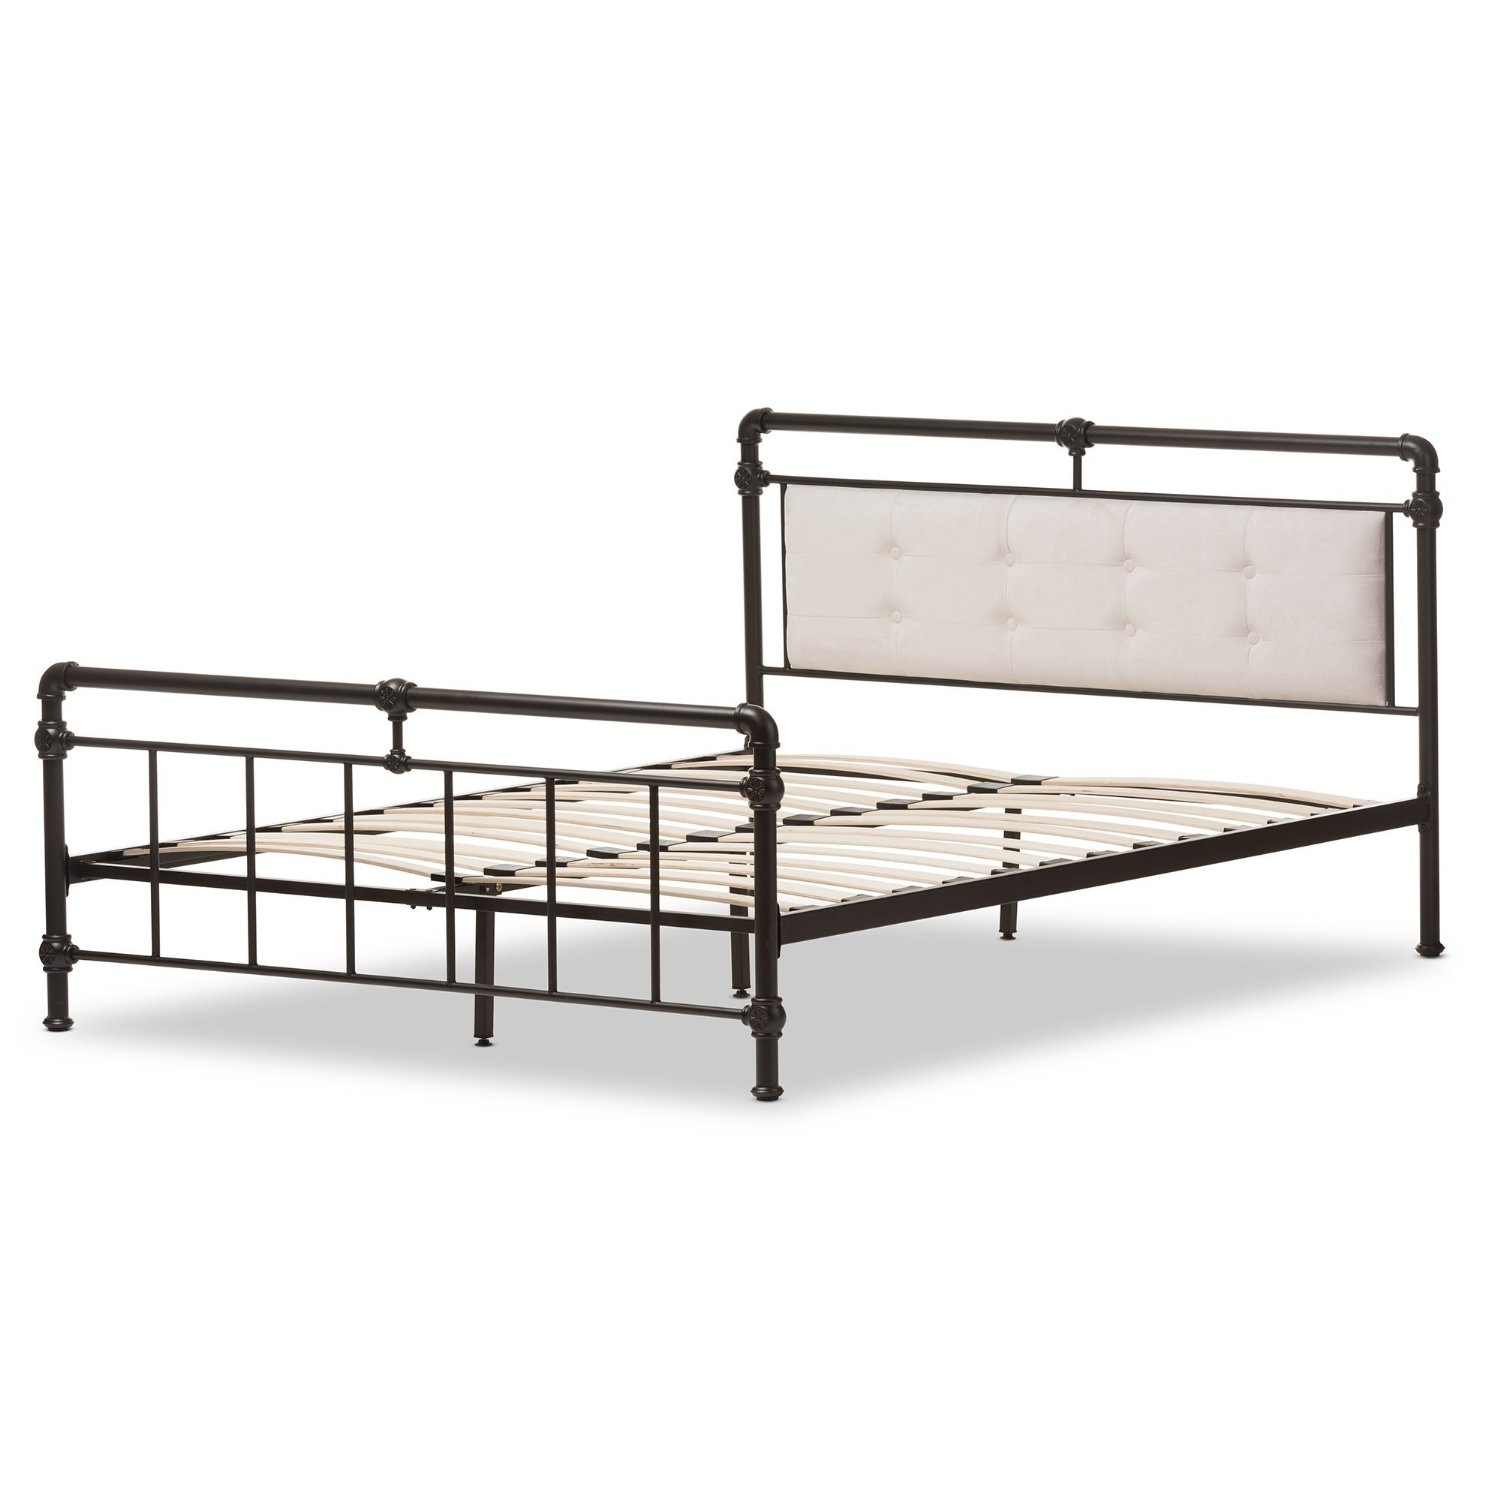 Baxton Studio Westcott Modern Classic Dark Bronze Finishing Metal and Light Beige Microfiber Fabric Platform Bed, Queen